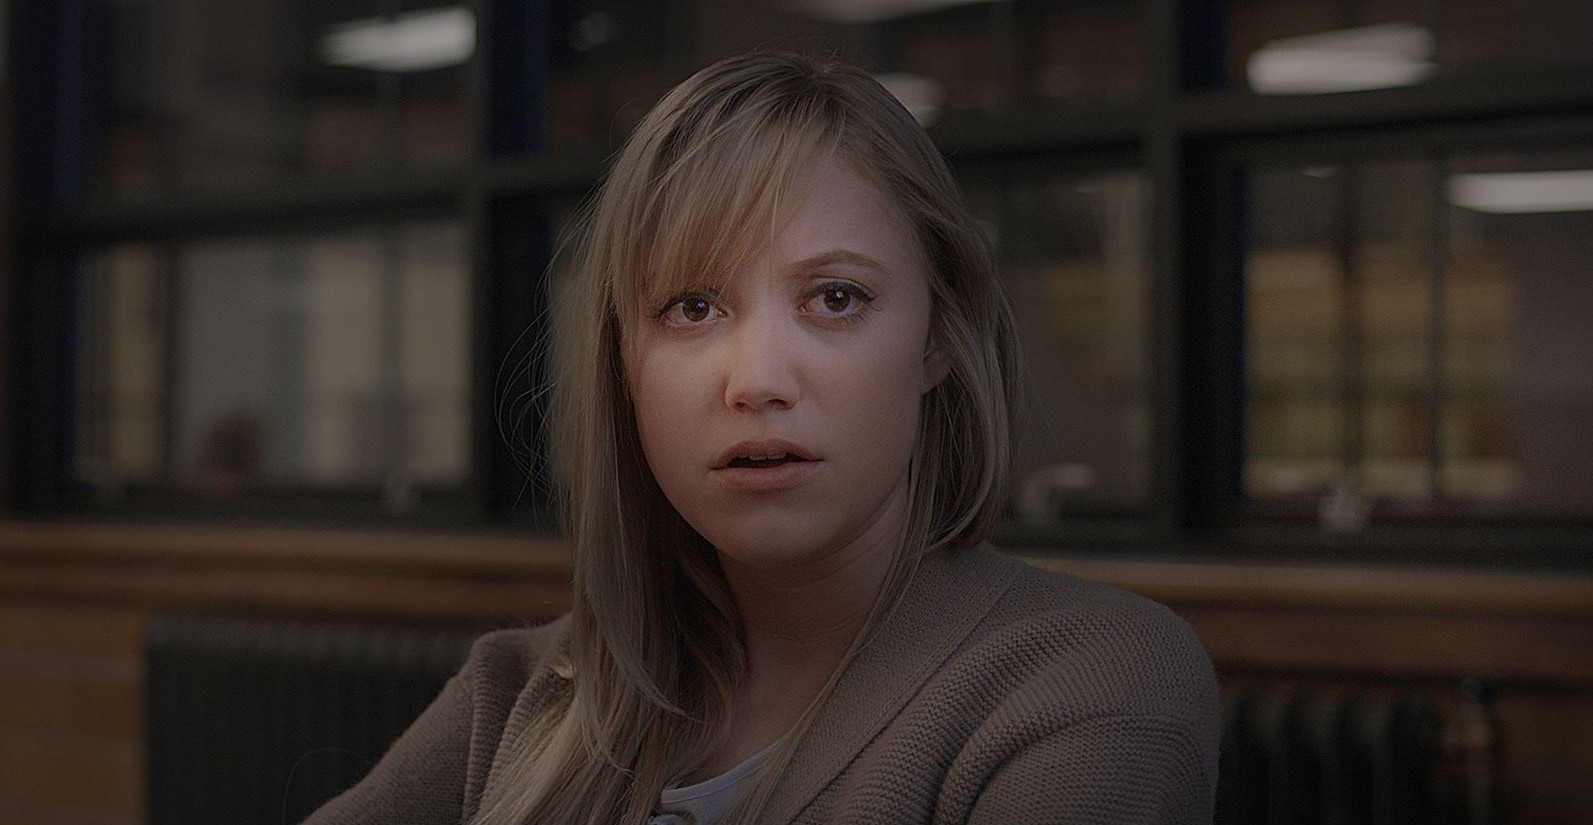 Director and Cast Talk 'It Follows'